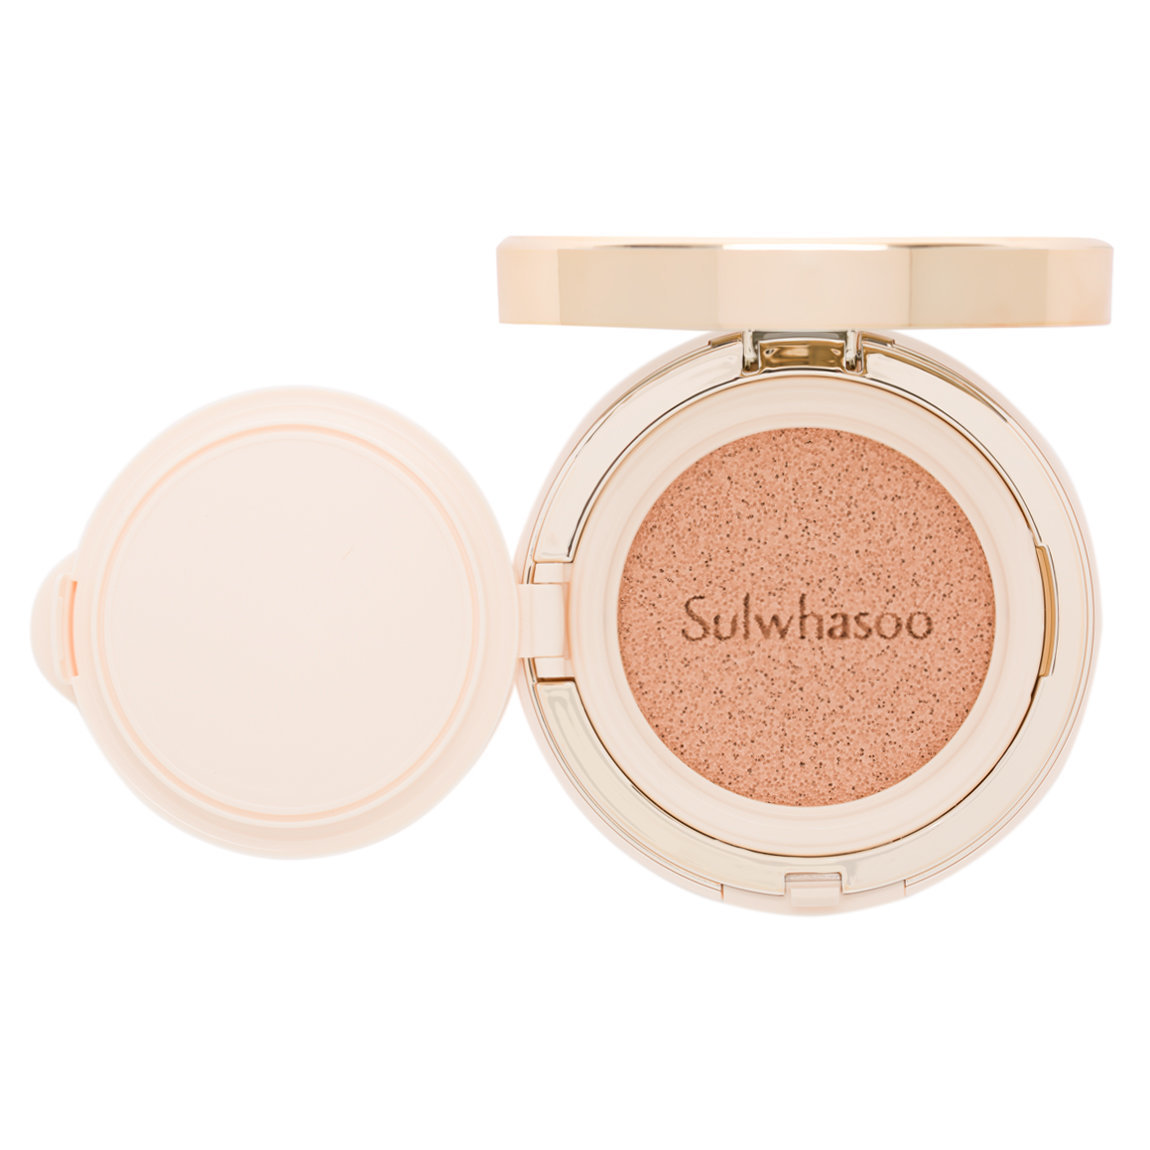 Sulwhasoo Perfecting Cushion No. 11